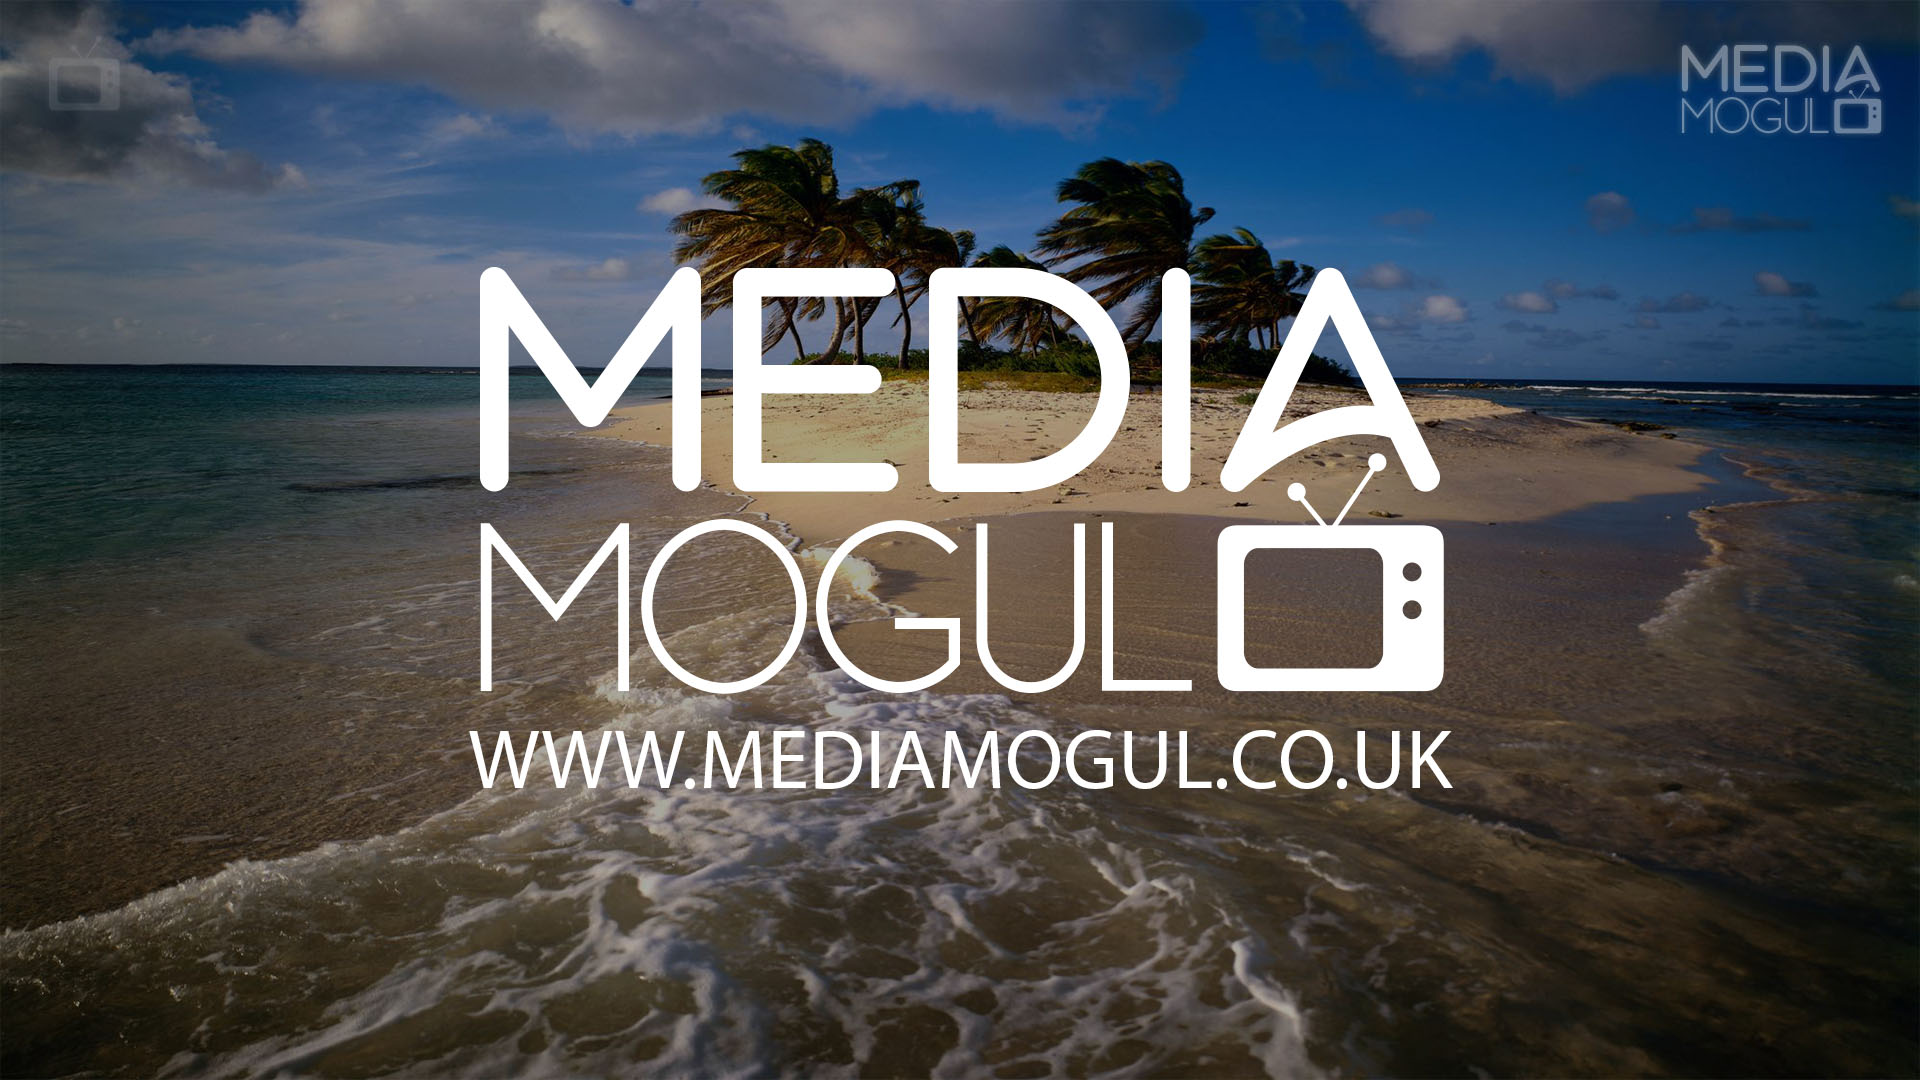 Media Mogul Backdrop 21